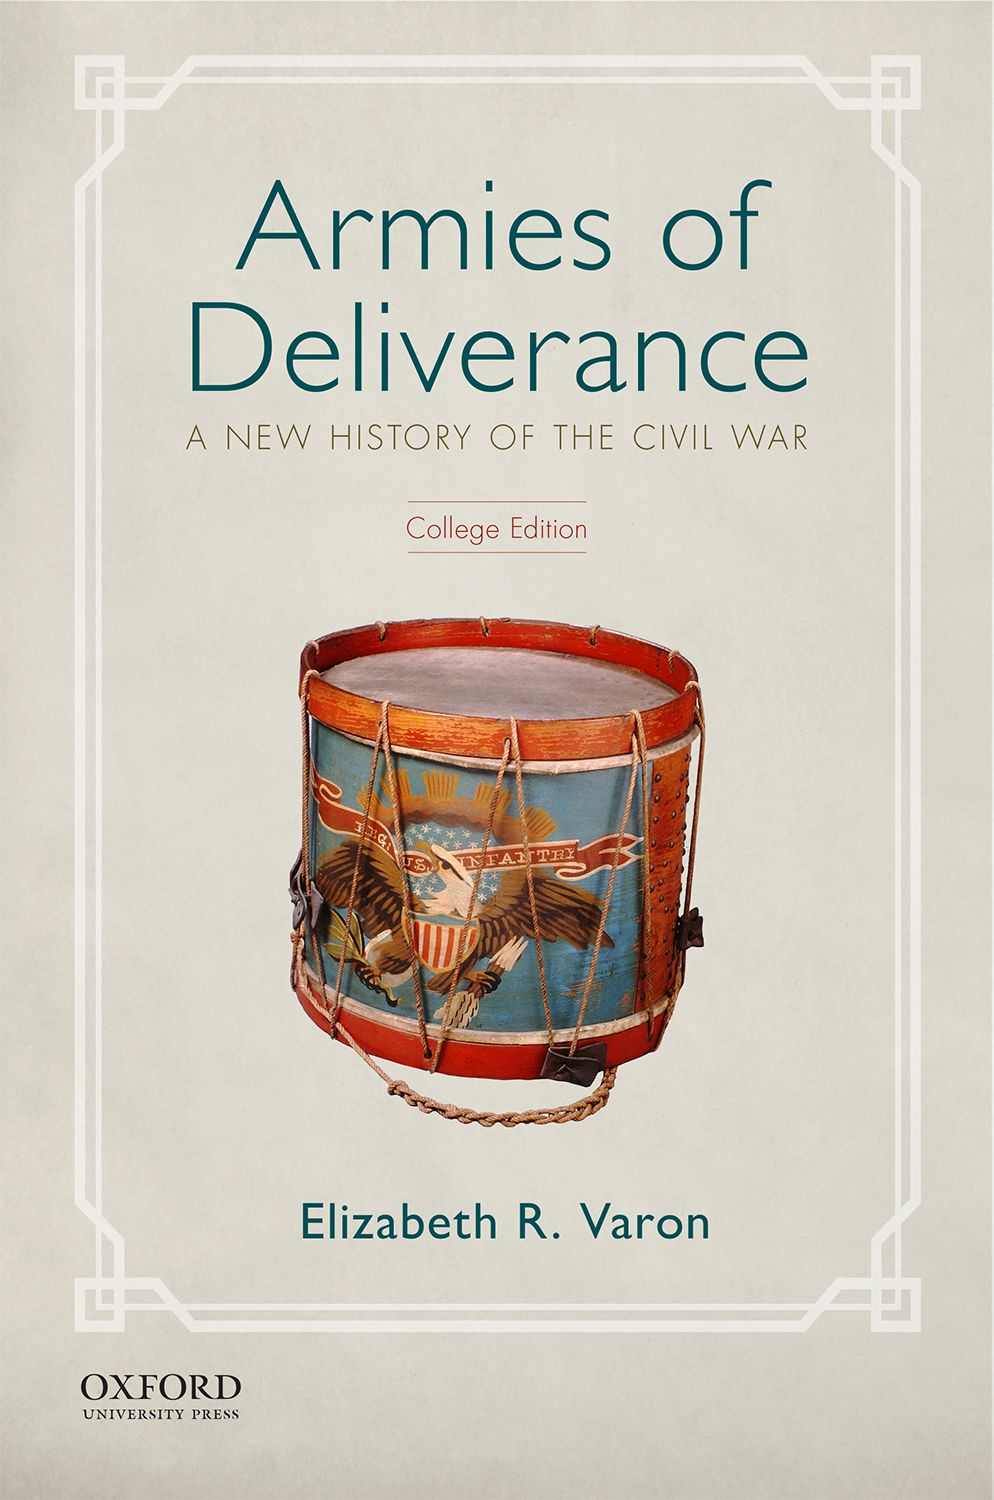 Armies of Deliverance: A New History of the Civil War College Edition Instructor Resources